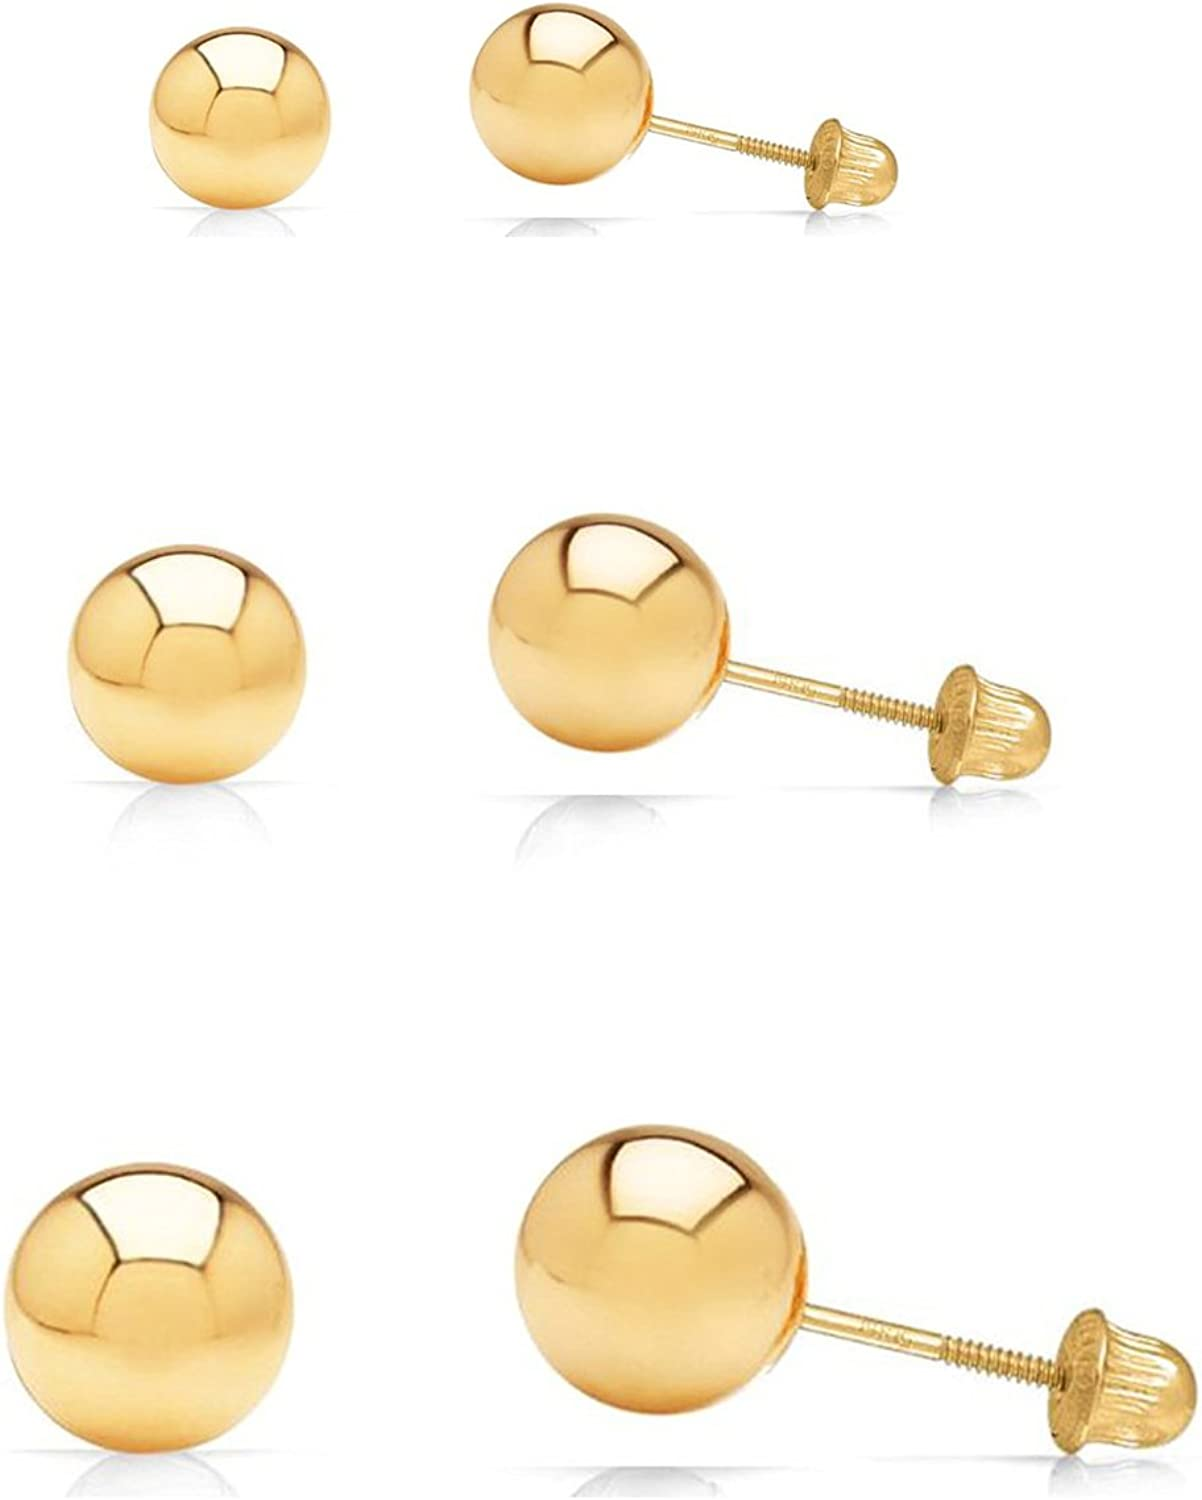 Dual Backers Too! Solid 14k Gold Puff Ball Stud Earrings 4mm Comes Gift Boxed